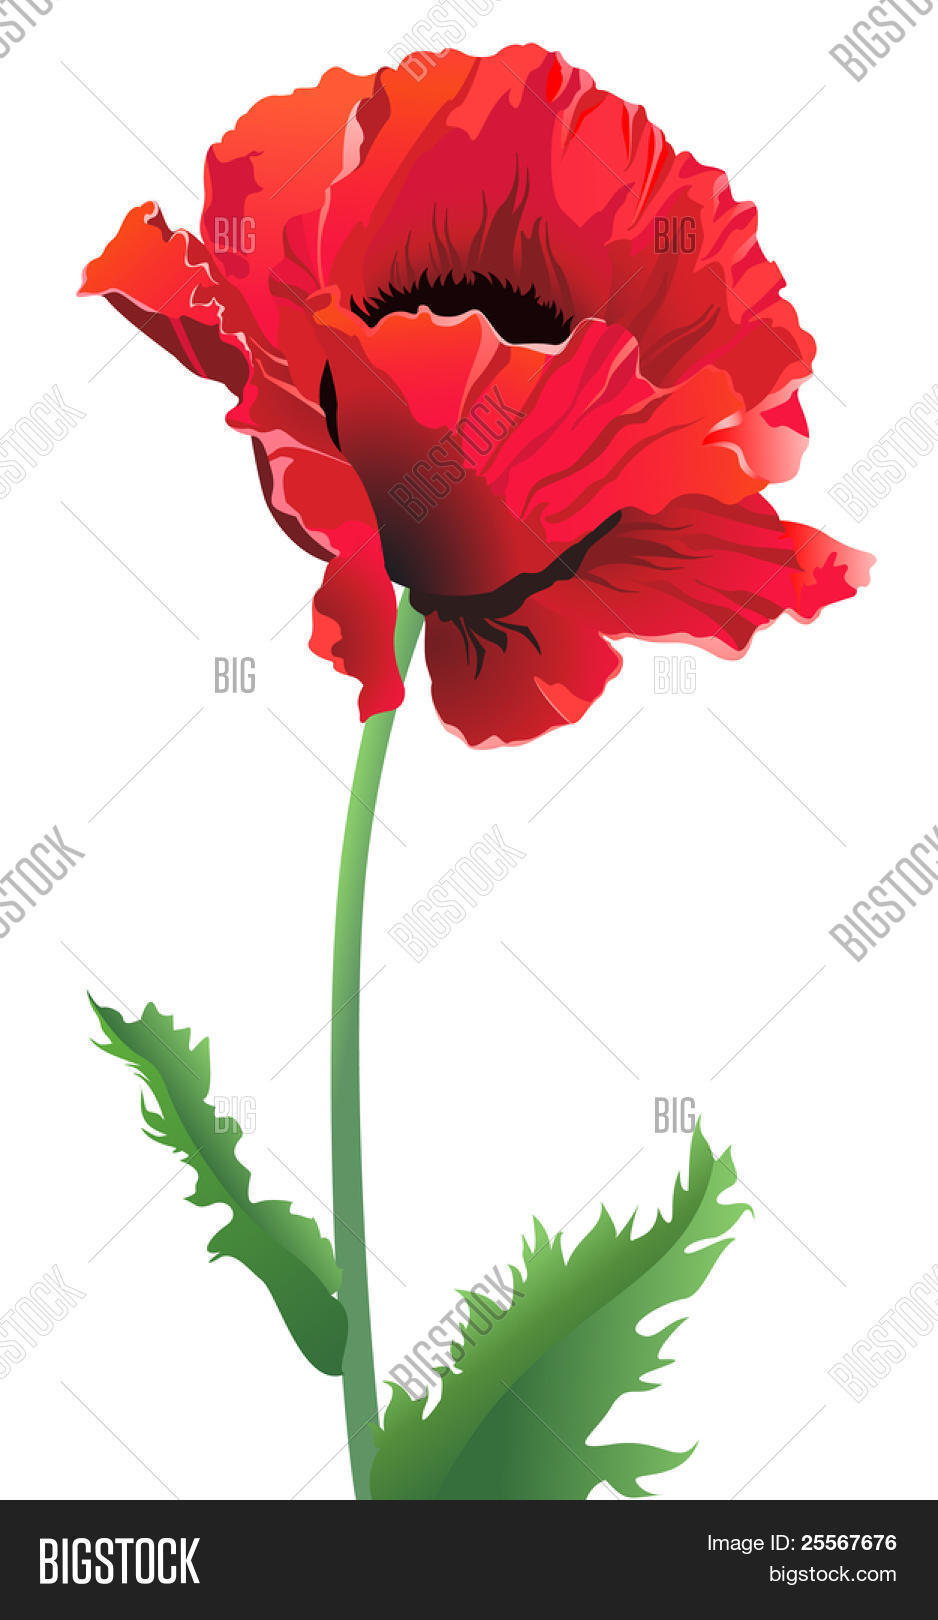 Isolated Poppy Flower Image Photo Free Trial Bigstock